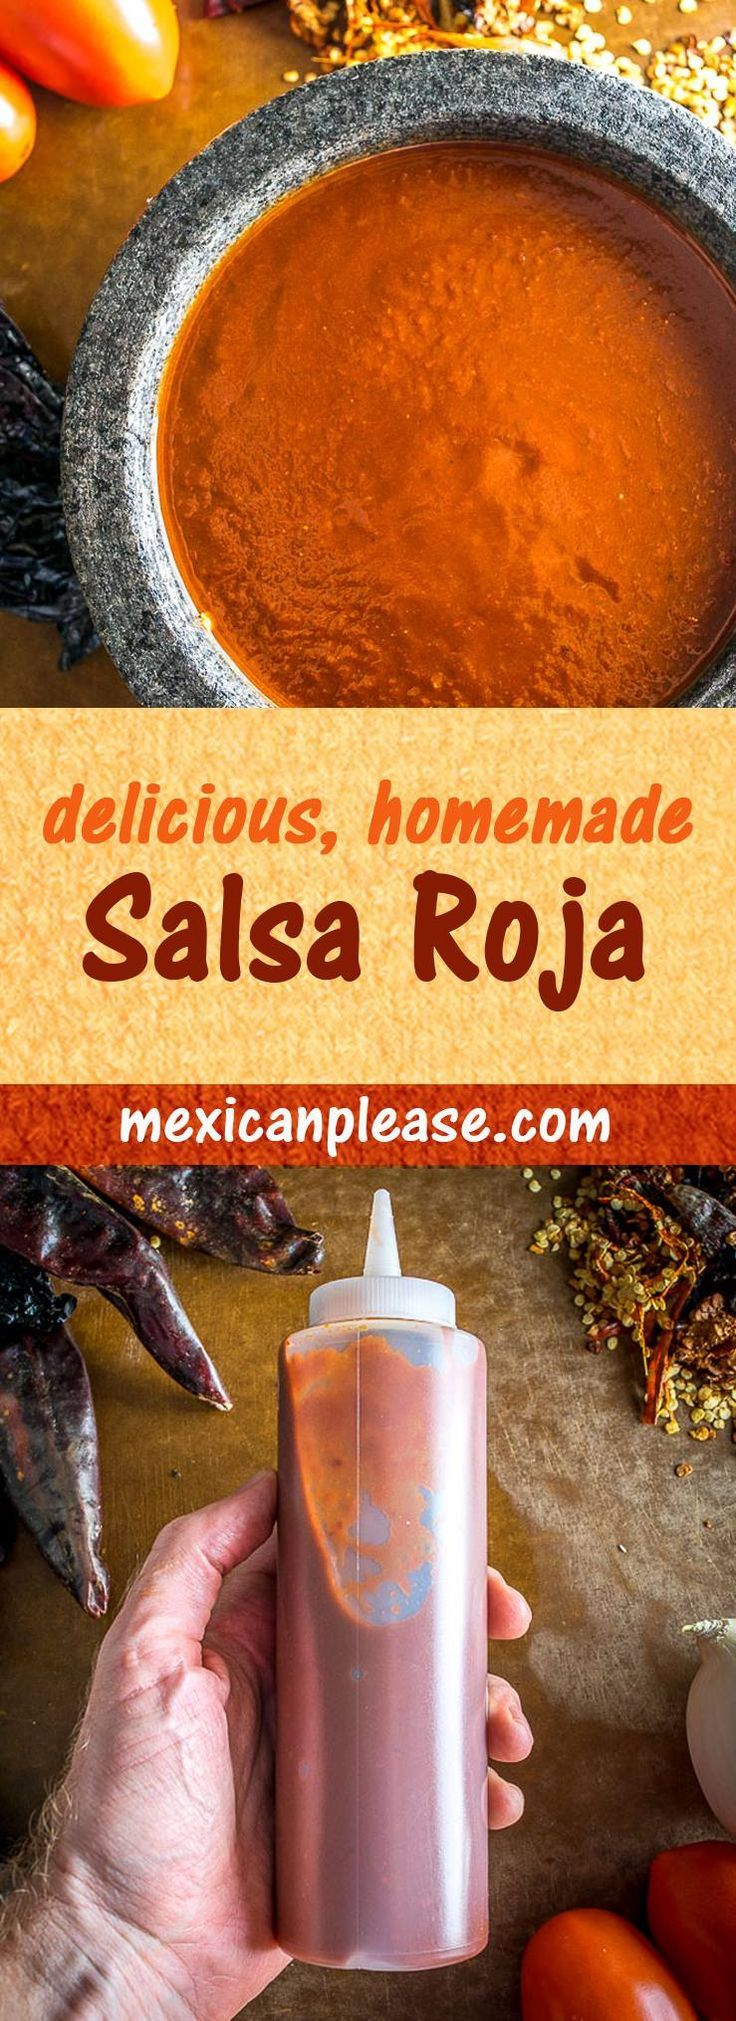 Salsa Roja is such a broad term these days. Here are the juicy details on two versions you can easily make at home. I use the Tomato Jalapeno version most often and it is delish -- all you need is tomato, jalapeno, onion, garlic, and salt. Just be sure to roast those tomatoes!  mexicanplease.com